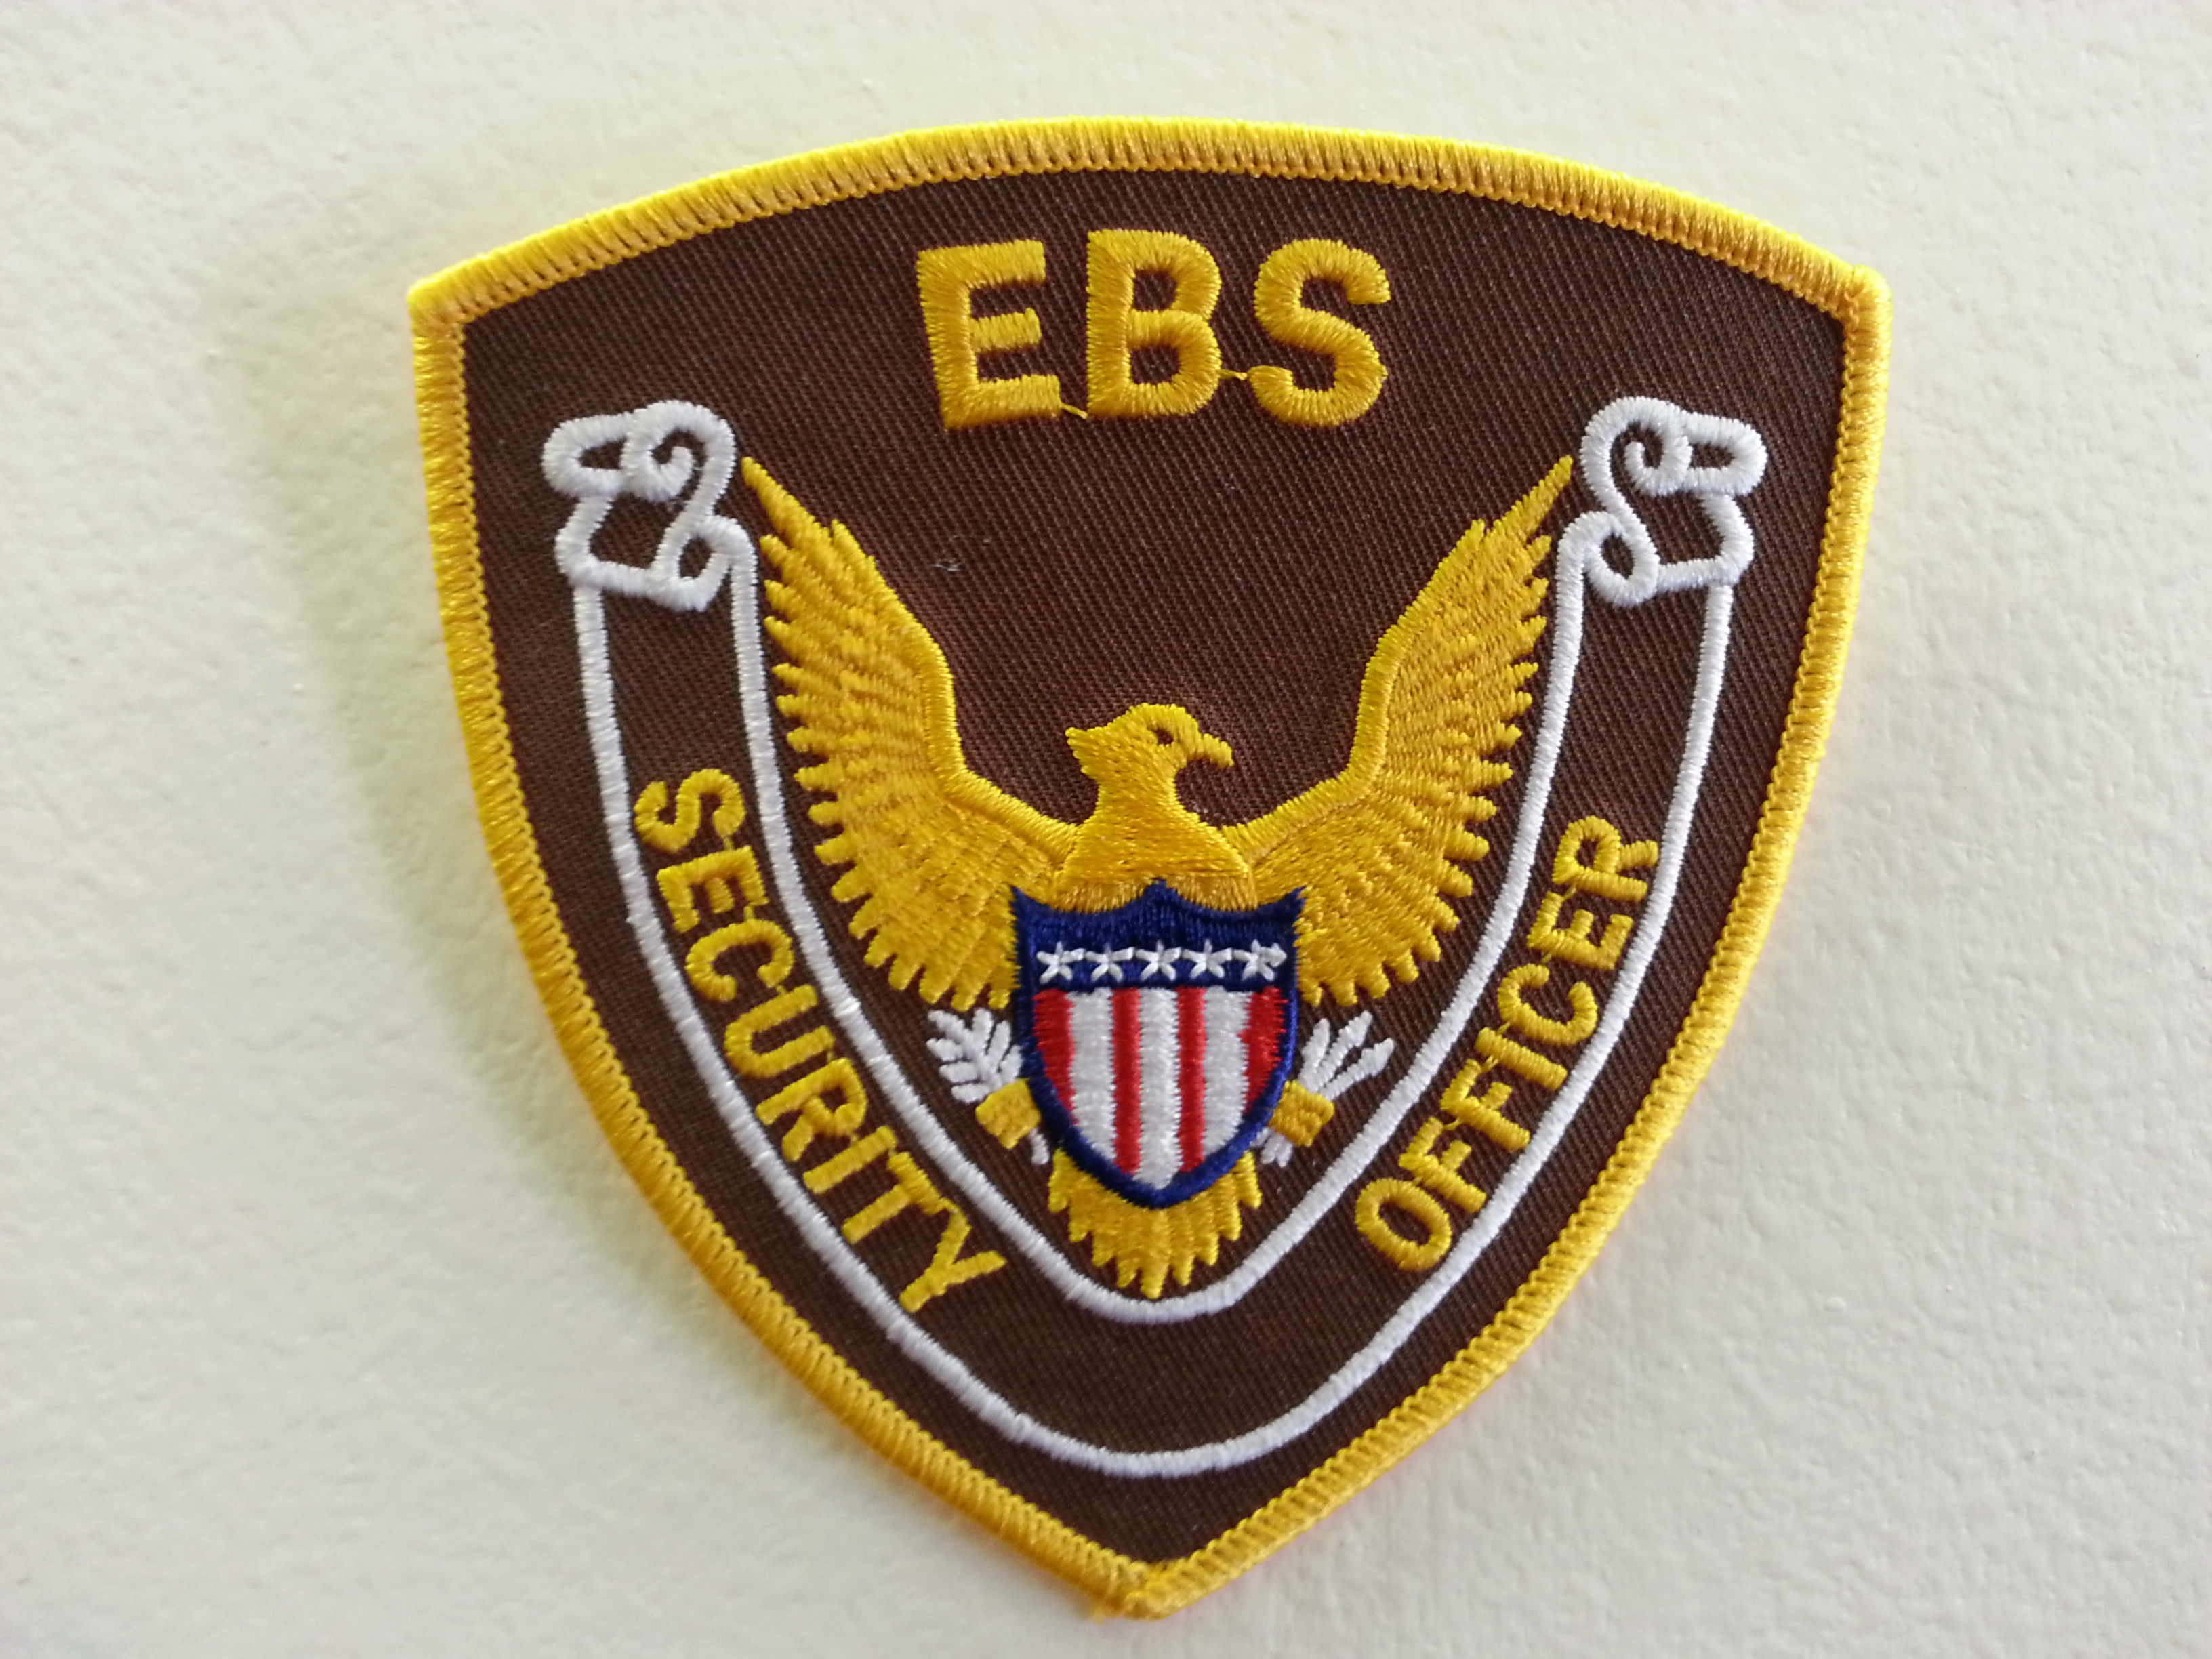 EBS SECURITY INC.